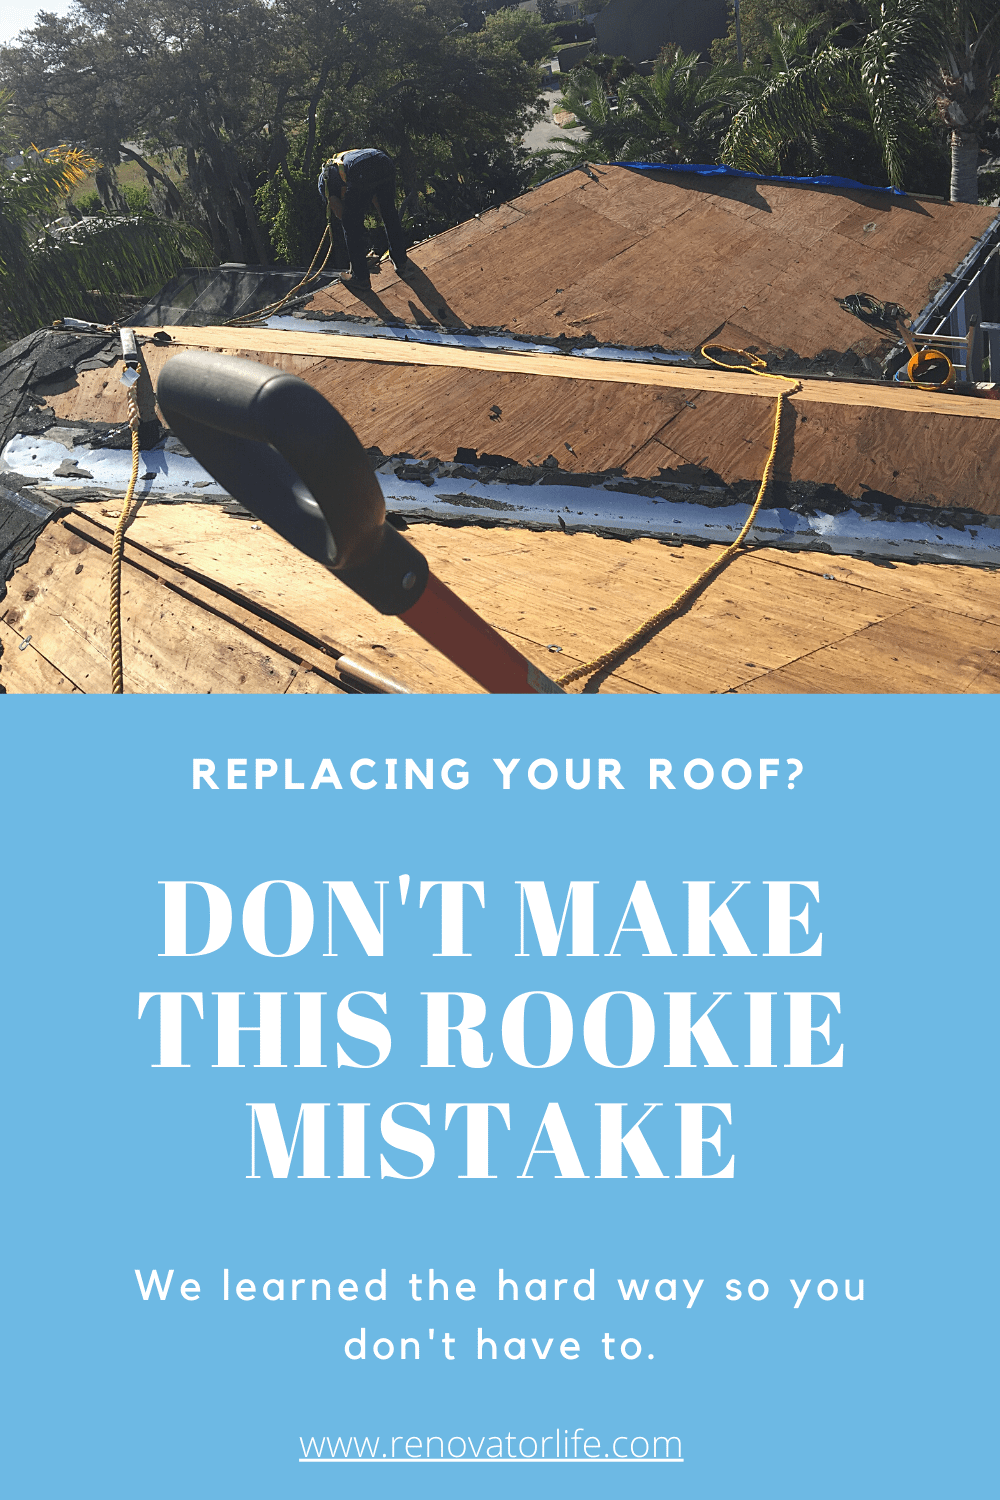 Don't Make this rookie mistake when replacing your roof